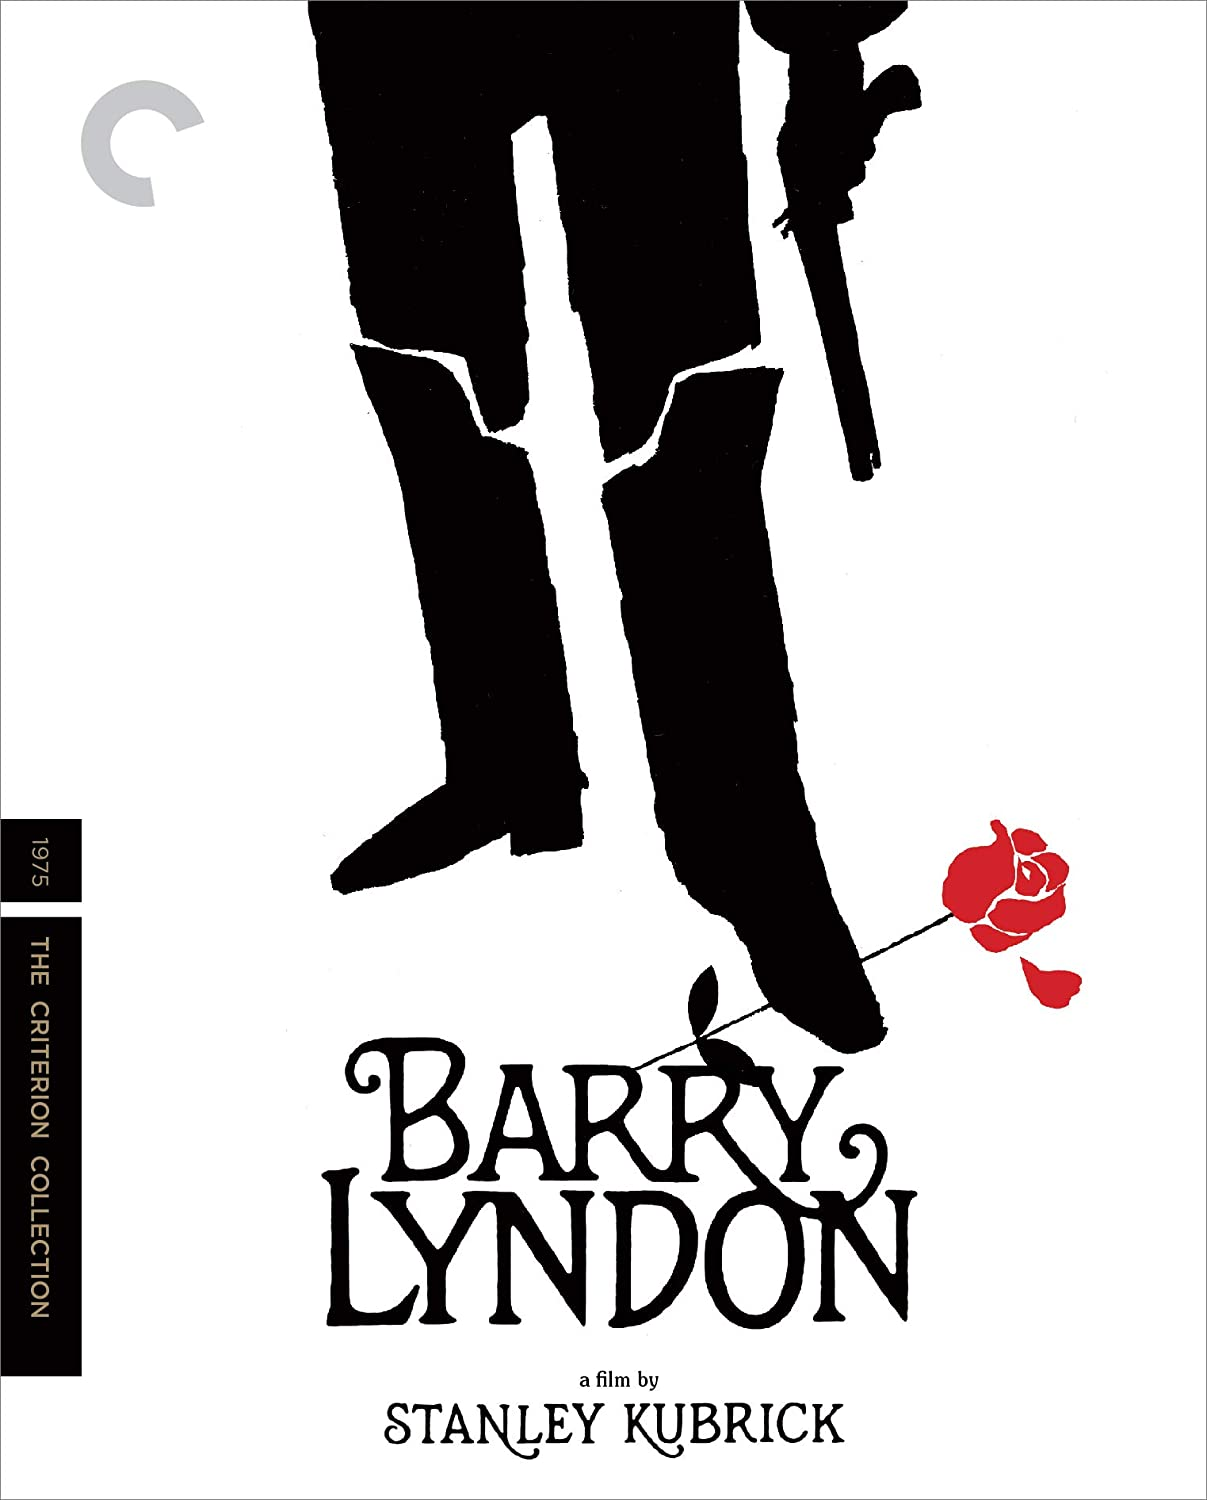 Image result for barry lyndon criterion poster